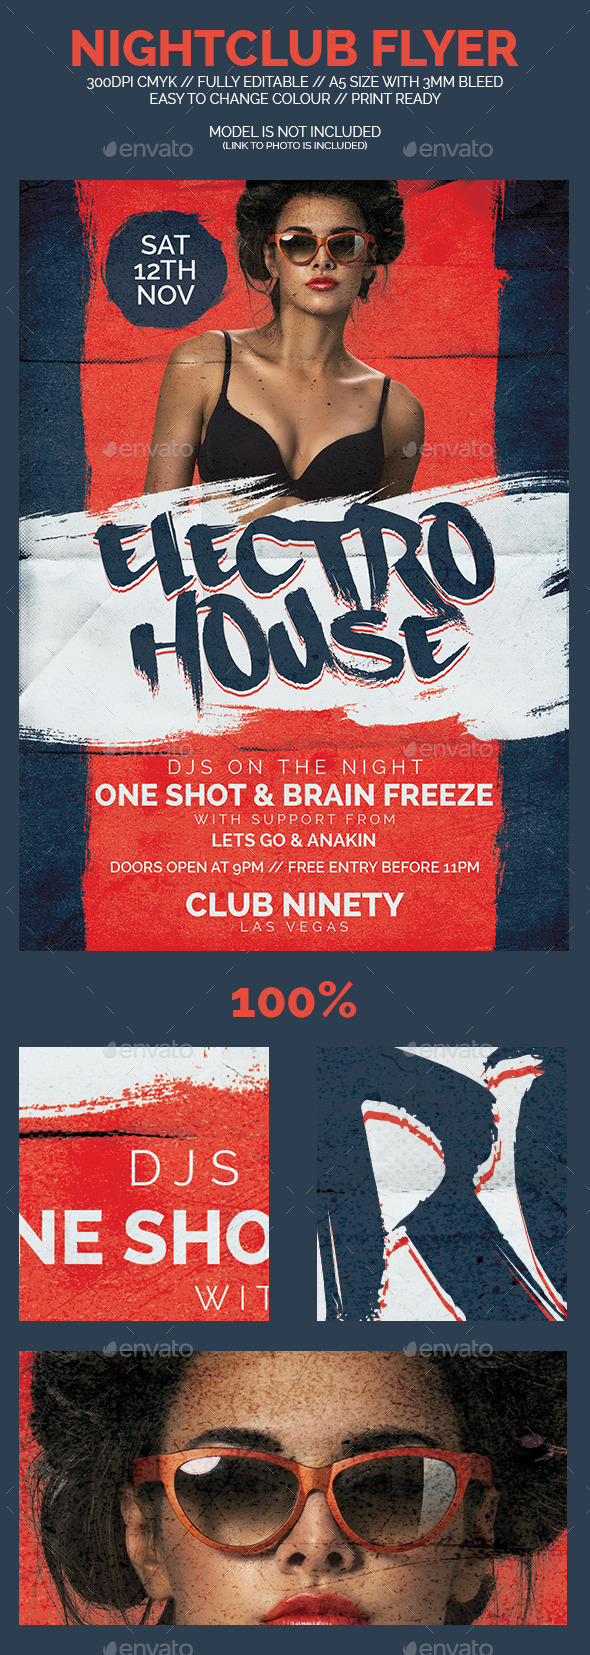 Electro House Nightclub Flyer - Clubs & Parties Events